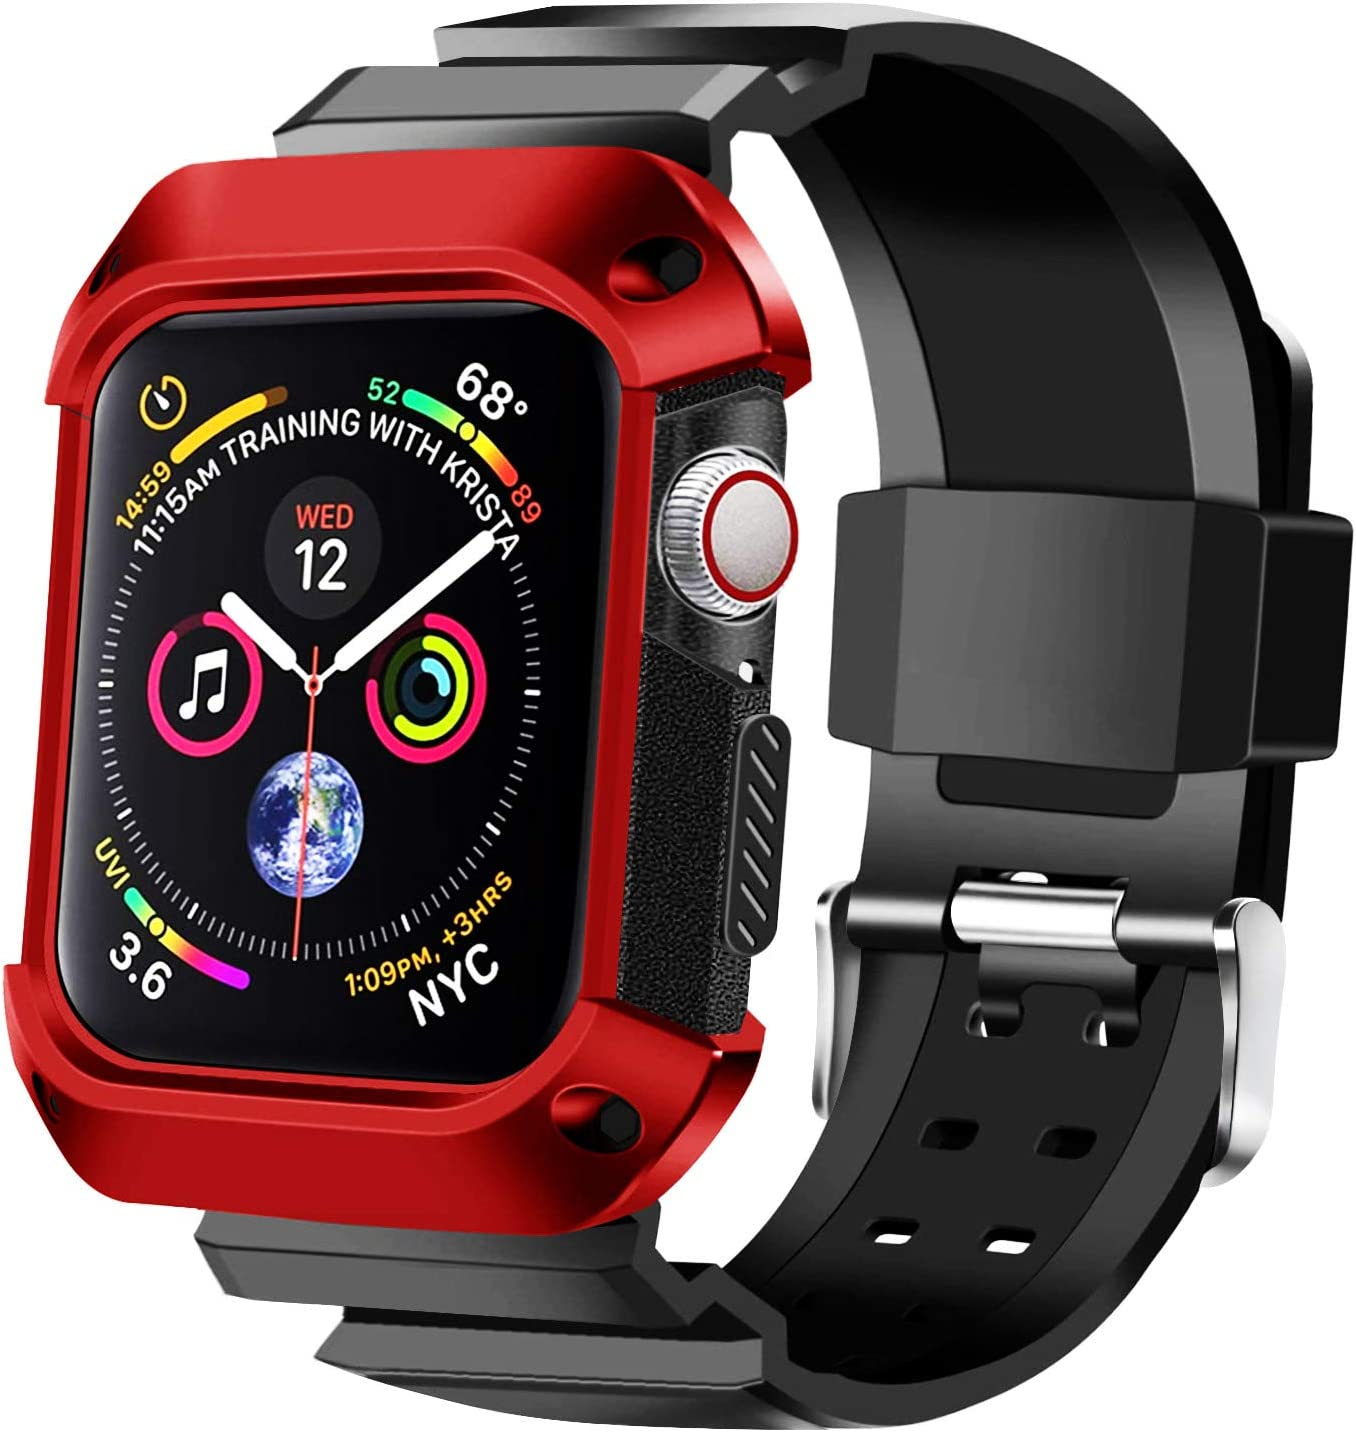 KUMEEK Compatible with Apple Watch Band 44mm 2018 with Case, Shock Resistant Rugged Protective Bumper Case with Soft Silicone Sport Strap for Apple Watch Series 4 44mm Red